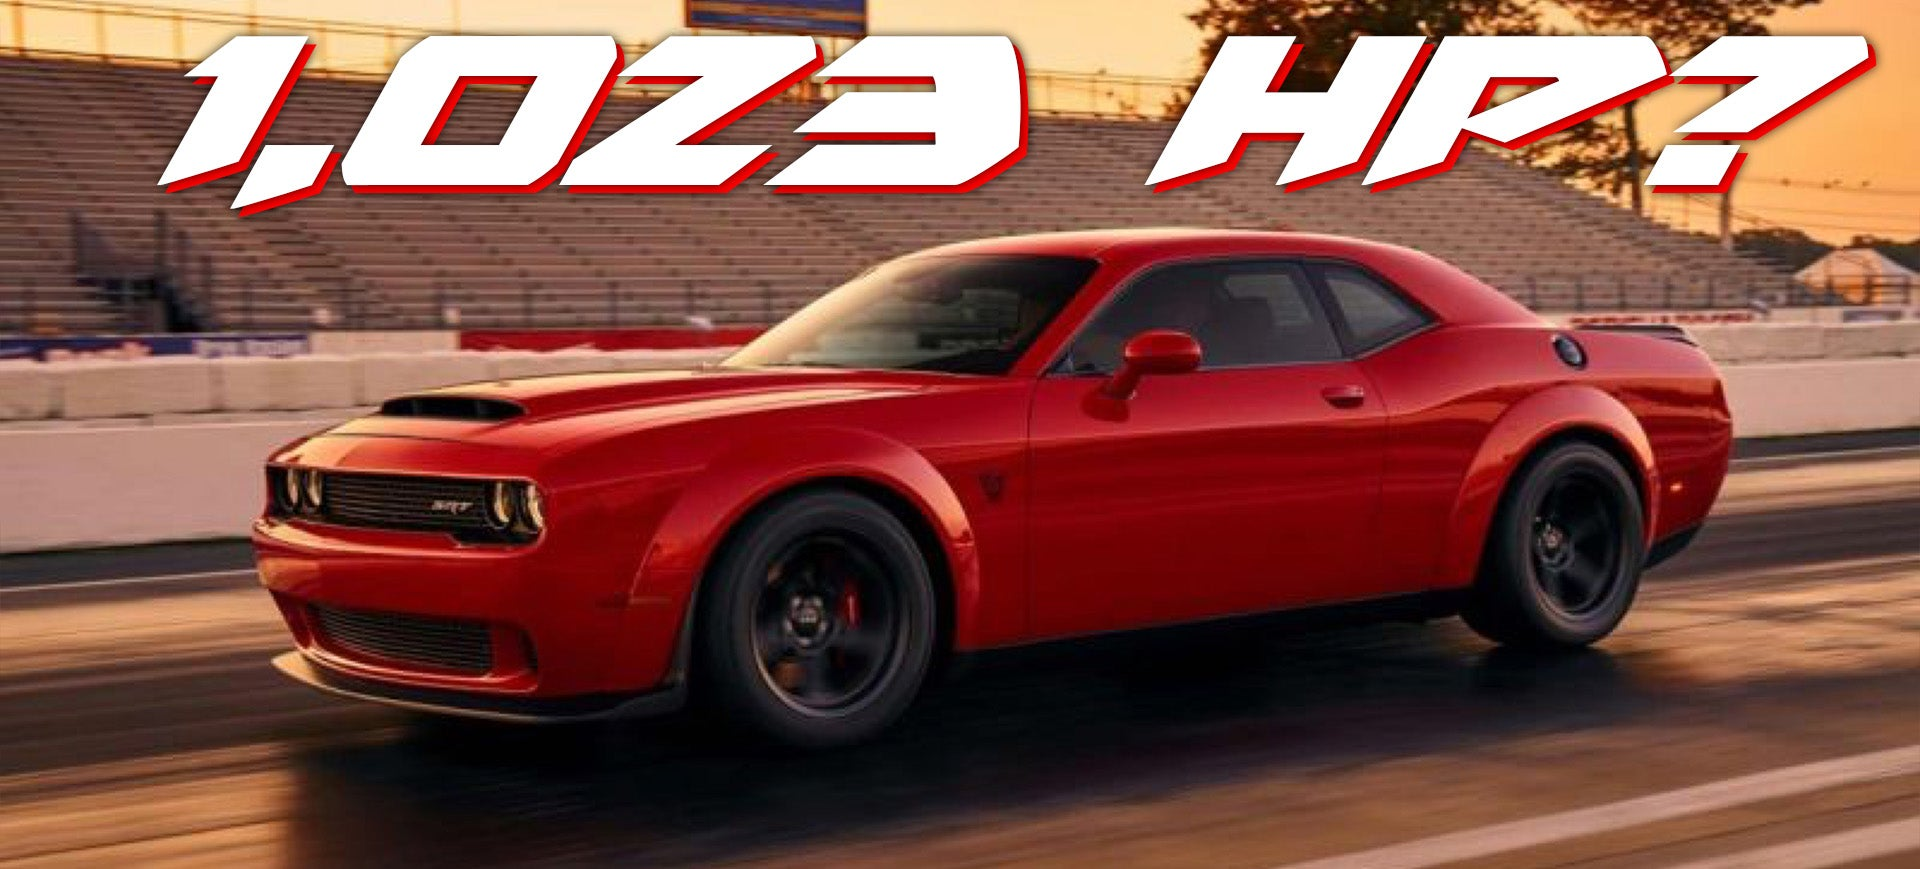 crazy rumours say the 2018 dodge challenger srt demon has up to 1023 horsepower gizmodo australia. Black Bedroom Furniture Sets. Home Design Ideas